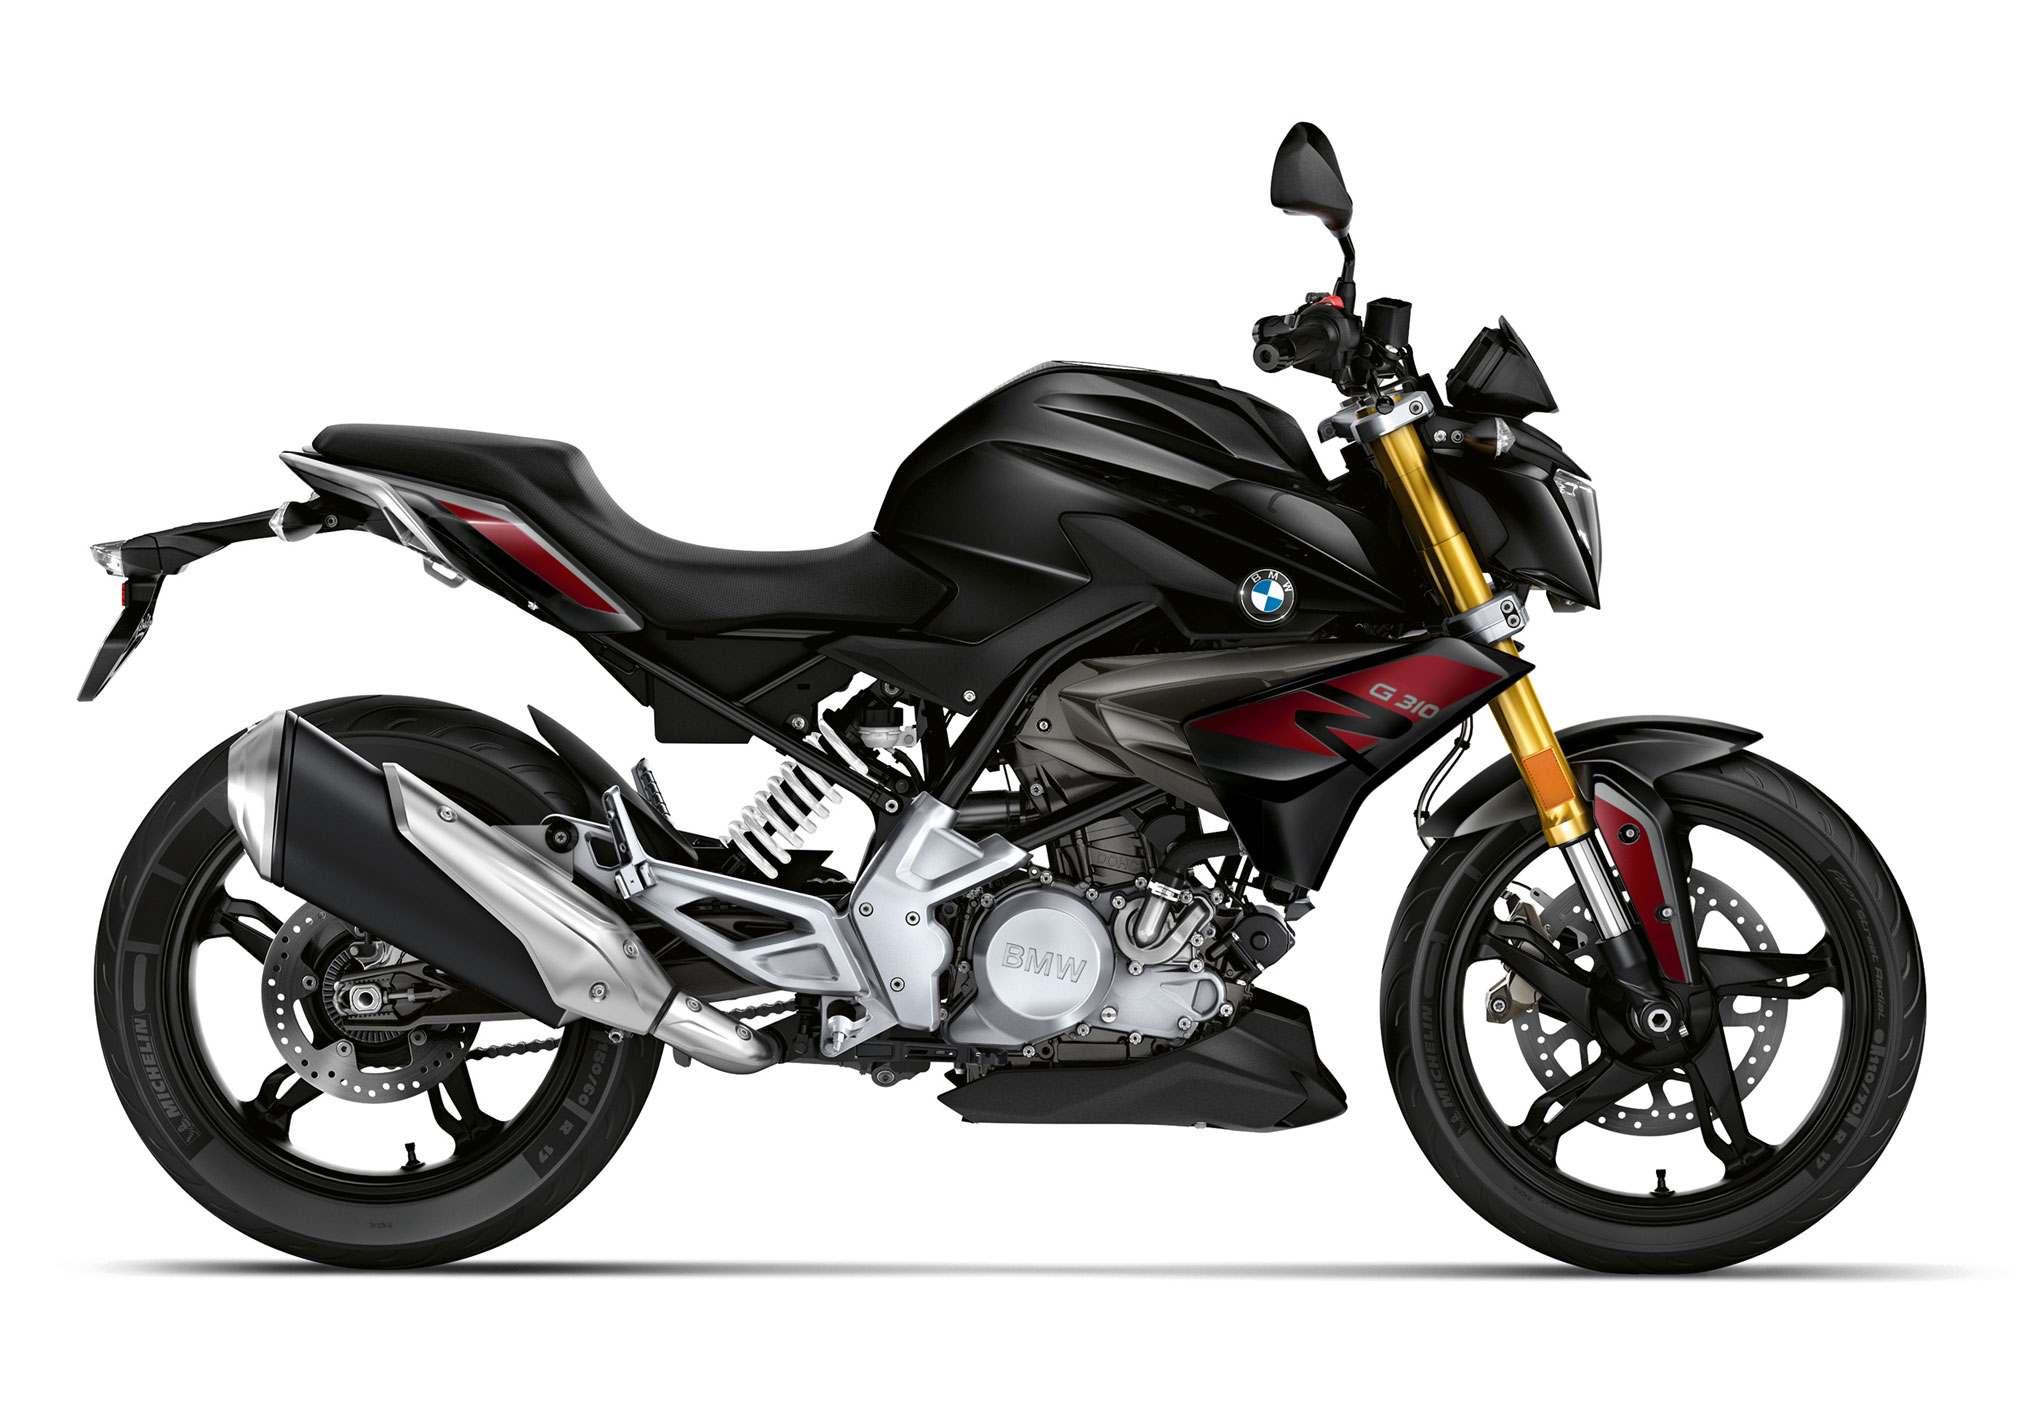 2020 bmw g310r guide • total motorcycle